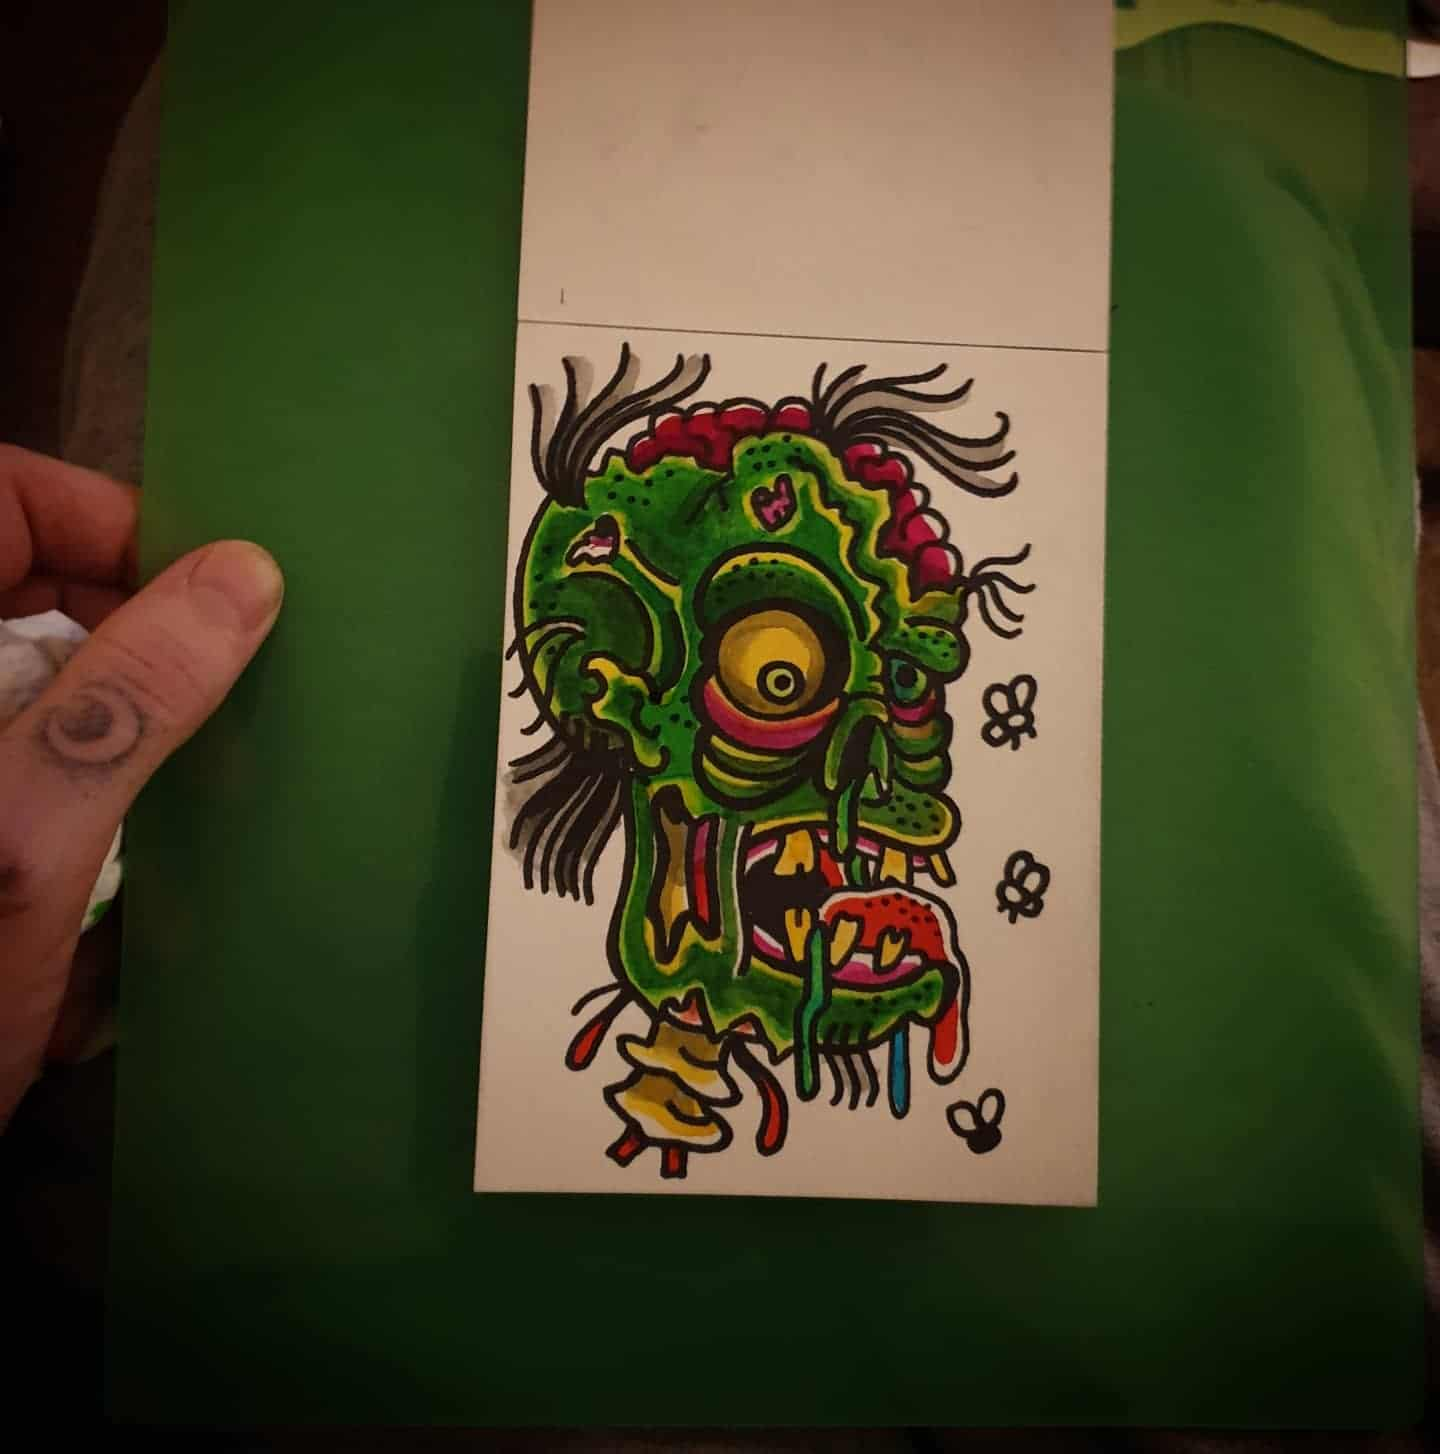 Did a tattoo on my mate Andy a couple years ago i enjoyed so much i did a wee painting inspired by it. miss you man .... also available to tattoo if/when this shit FUCKS OFF !!!! zombie zombieapocalypse zombiehead zombietattoo zombiepainting painting painteveryday draweveryday tattooart art artist tattooer lockdownart edinburghtattooer edinbugh scotland scottishtattooer studioxiii studioxiiigallery tattoosbyalanross alrosstattoo